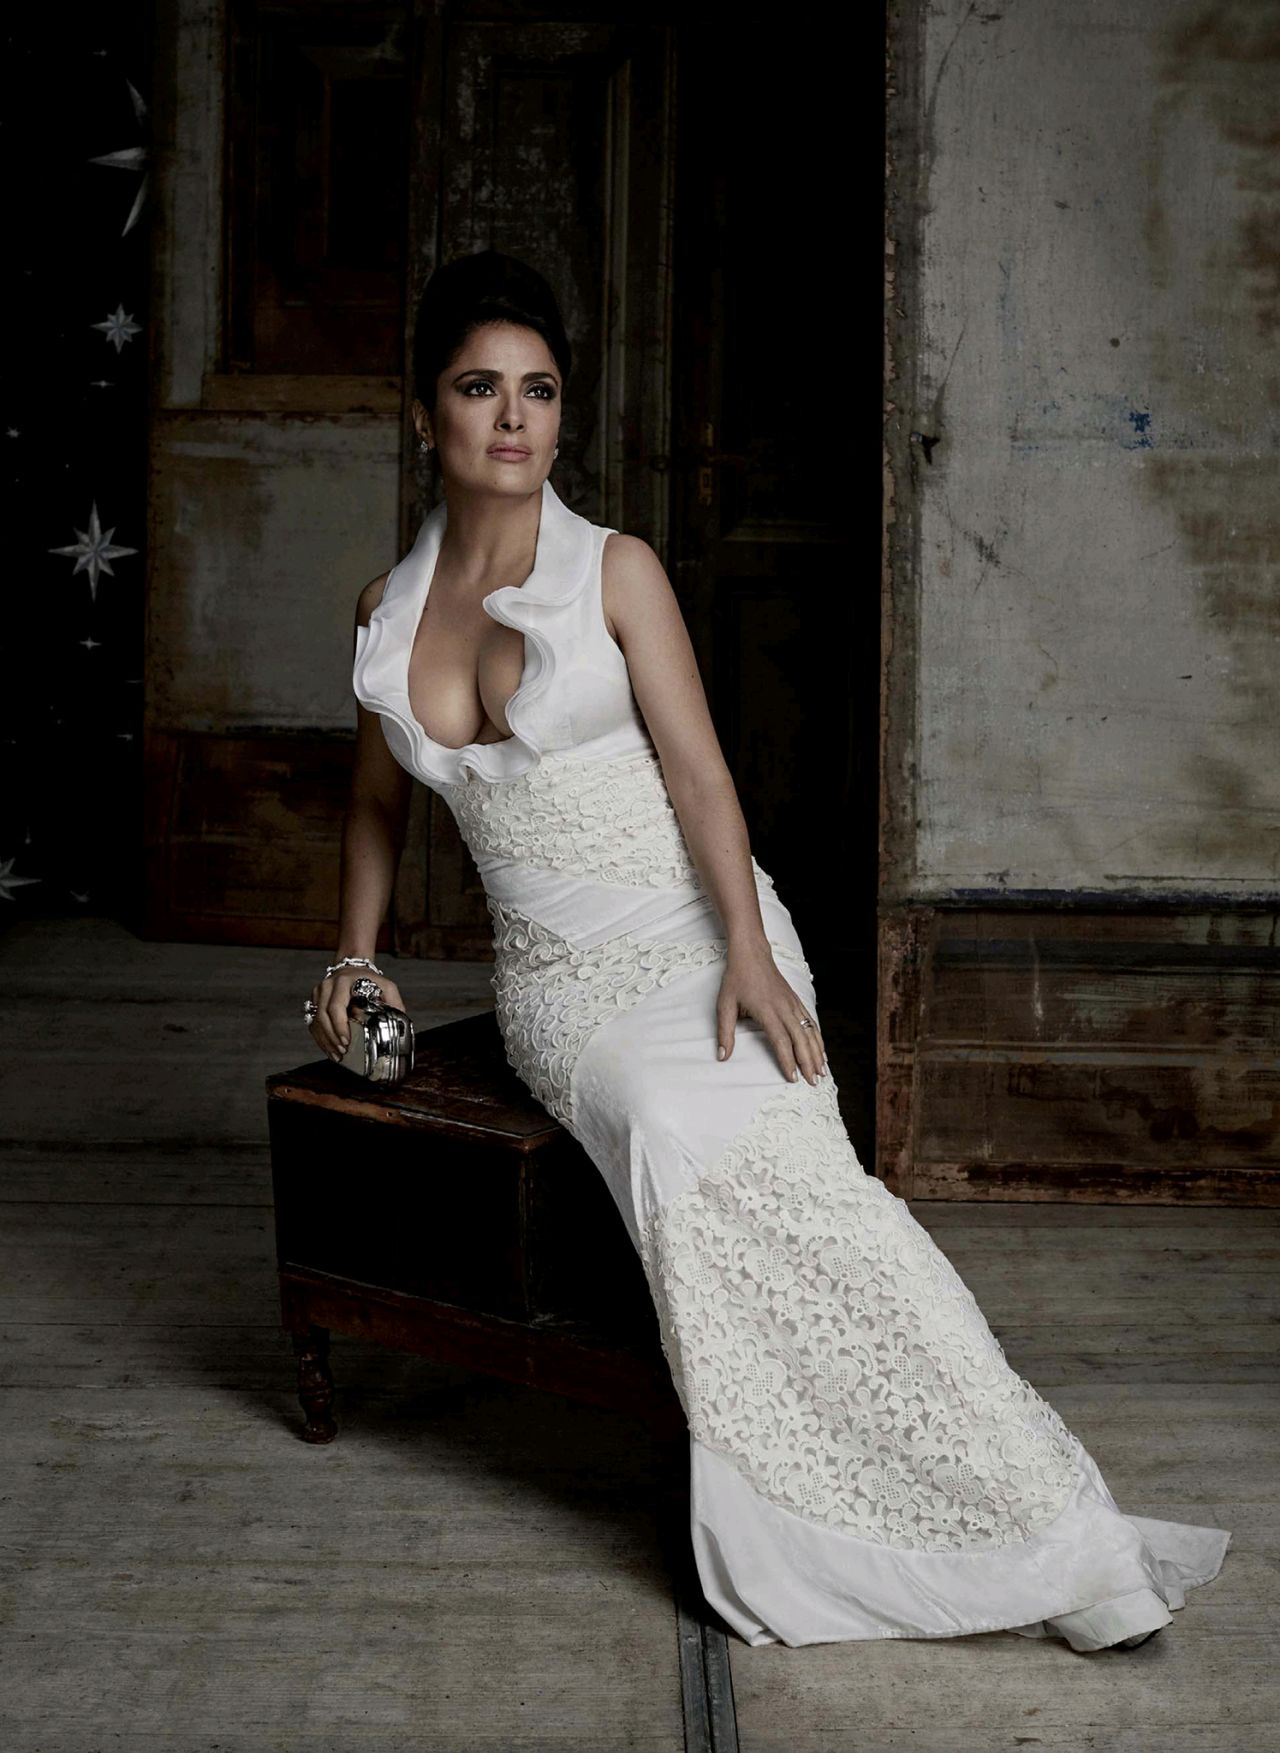 Salma Hayek – Photoshoot for Evening Standard December 2015